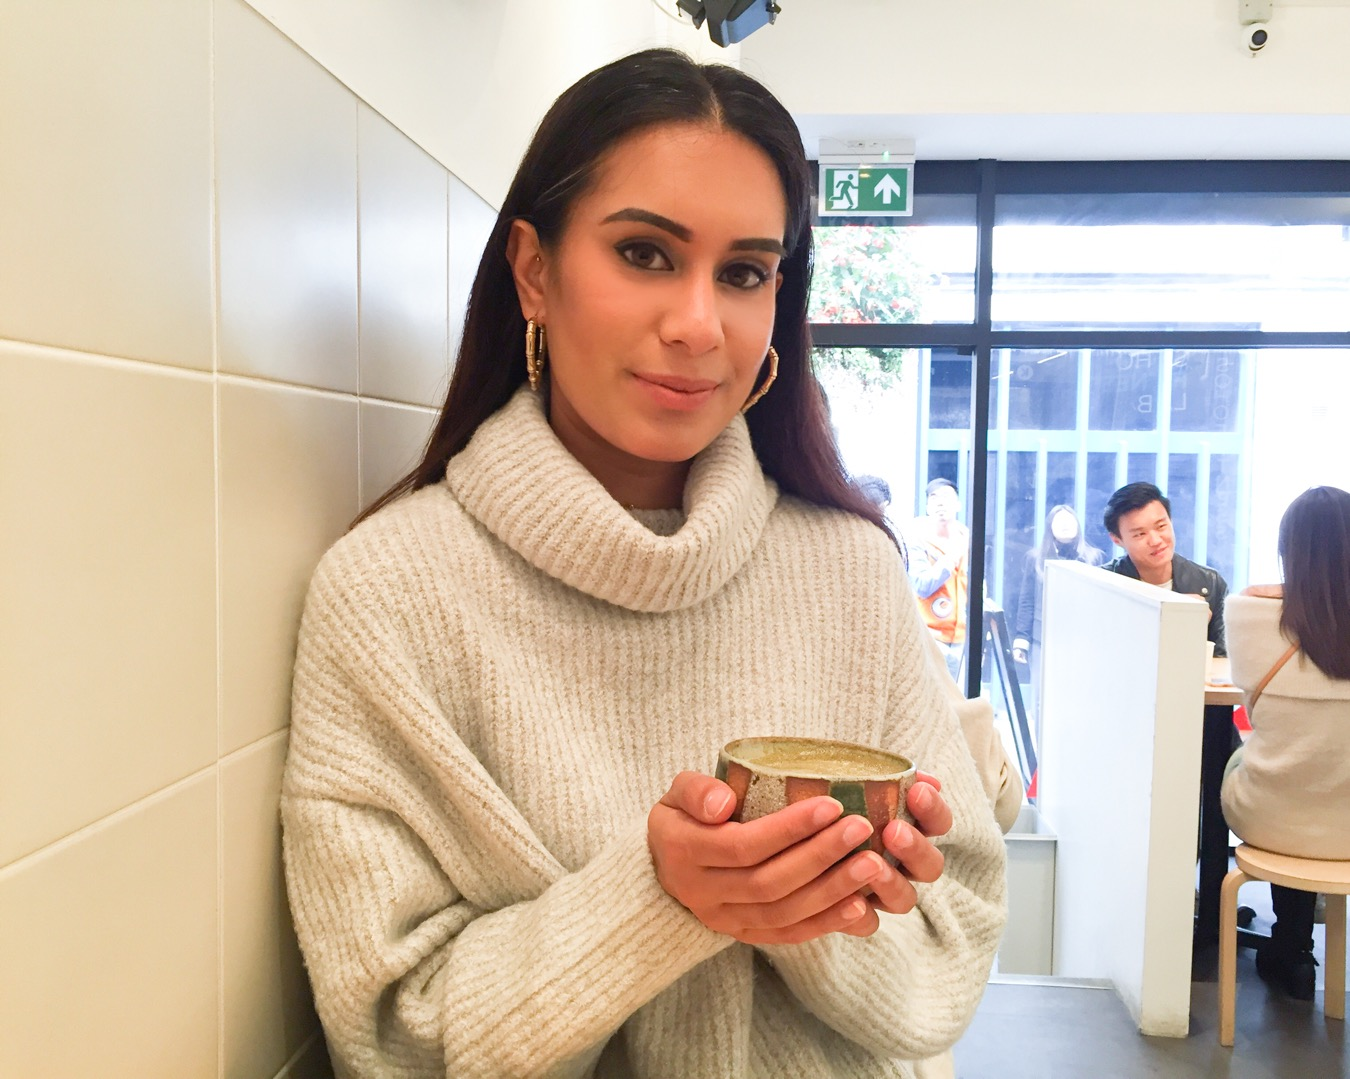 London blogger Reena Rai enjoying a Hojicha latte at Kova Patisserie in Soho